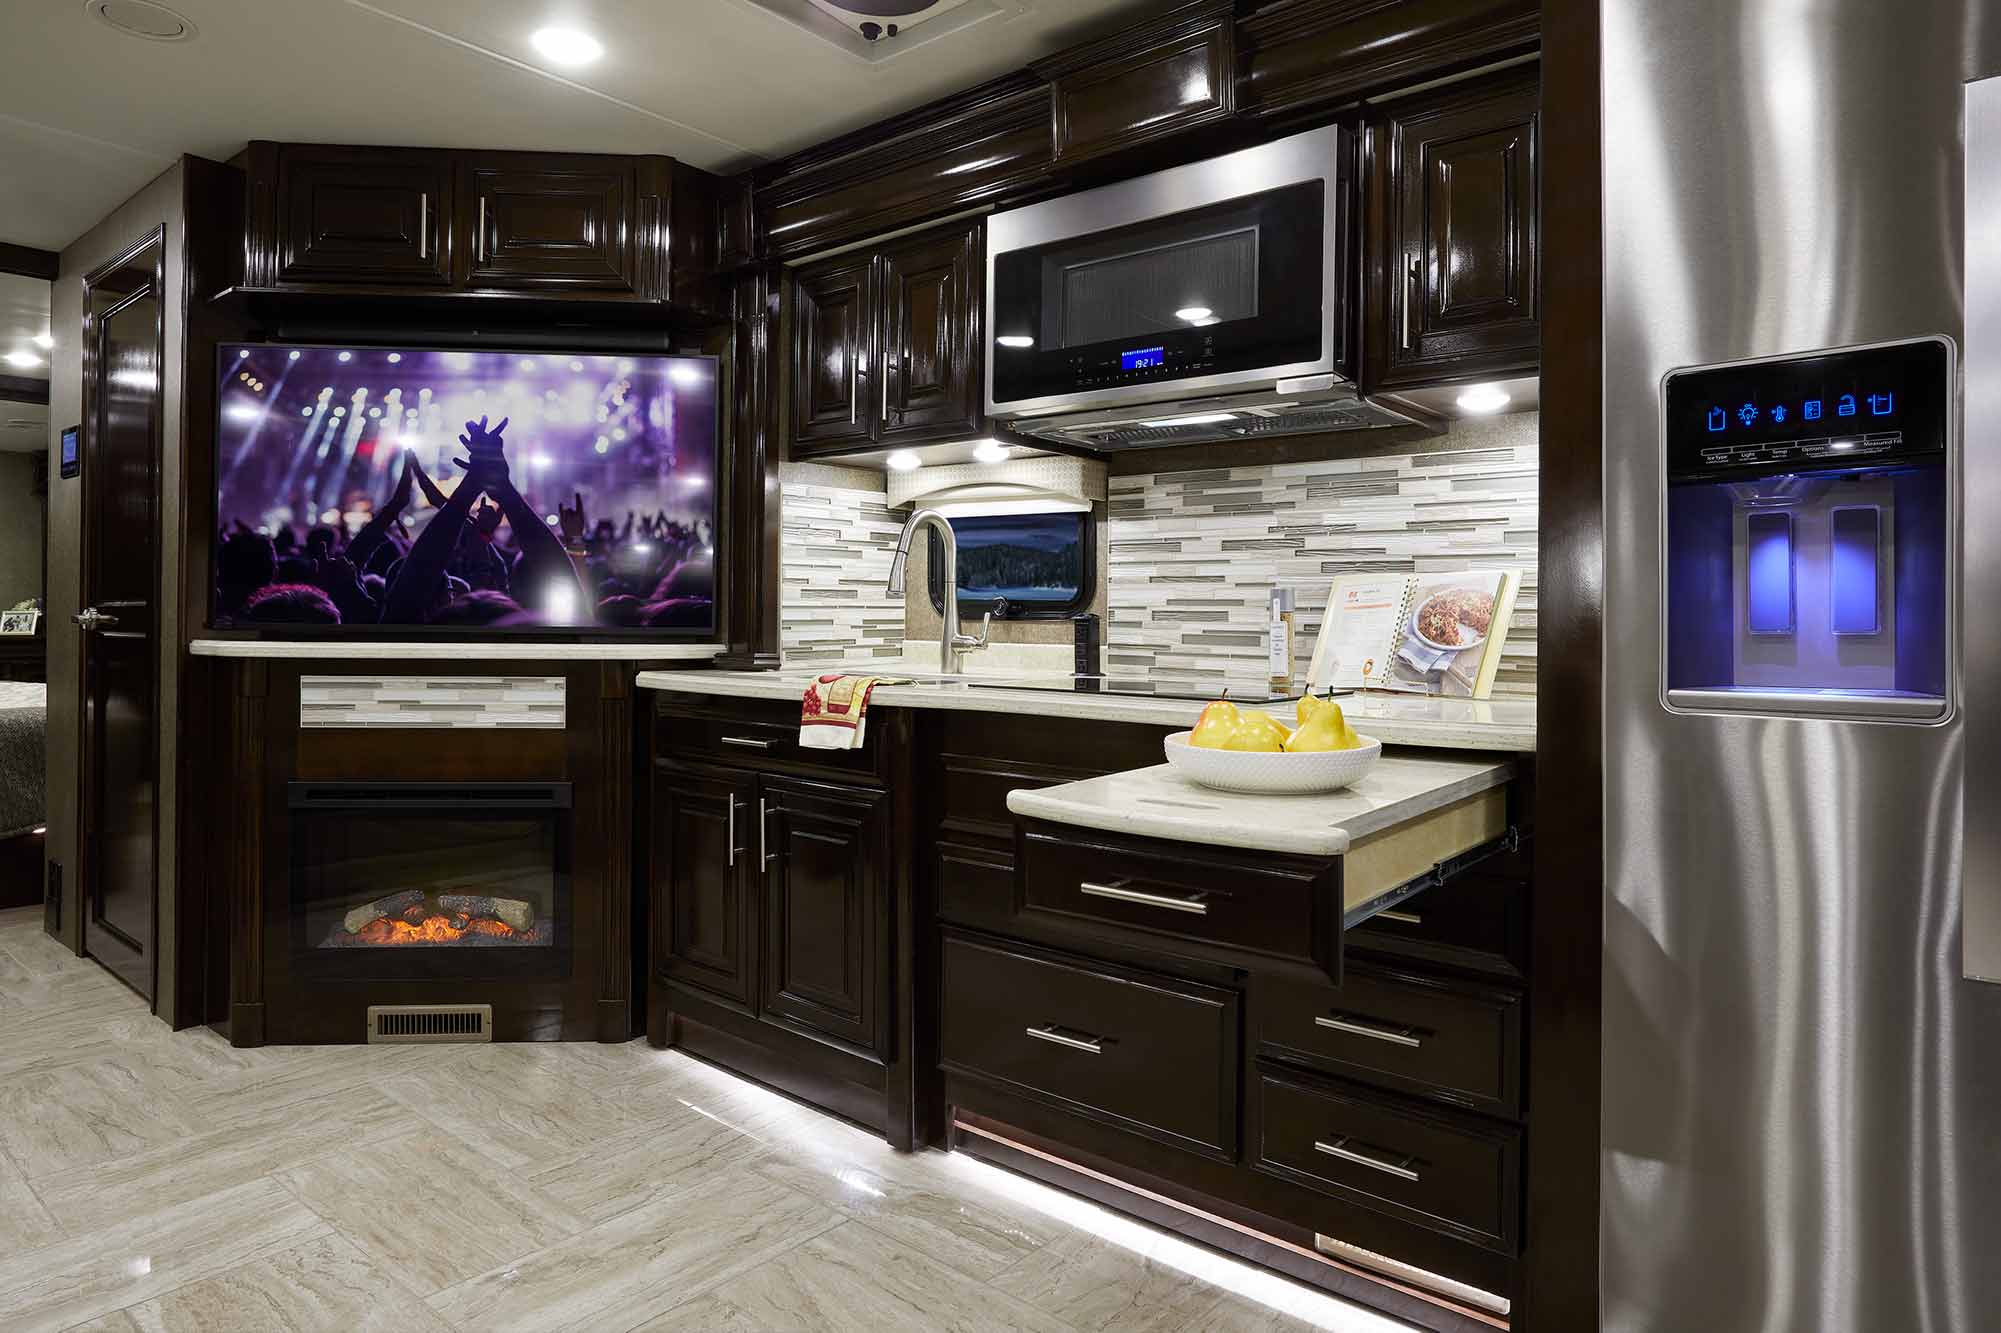 P furthermore Inline Image Preview also I C Img in addition Ve ian G Fresco Milan Kitchen furthermore Palazzo X. on bed tilt lifestyle